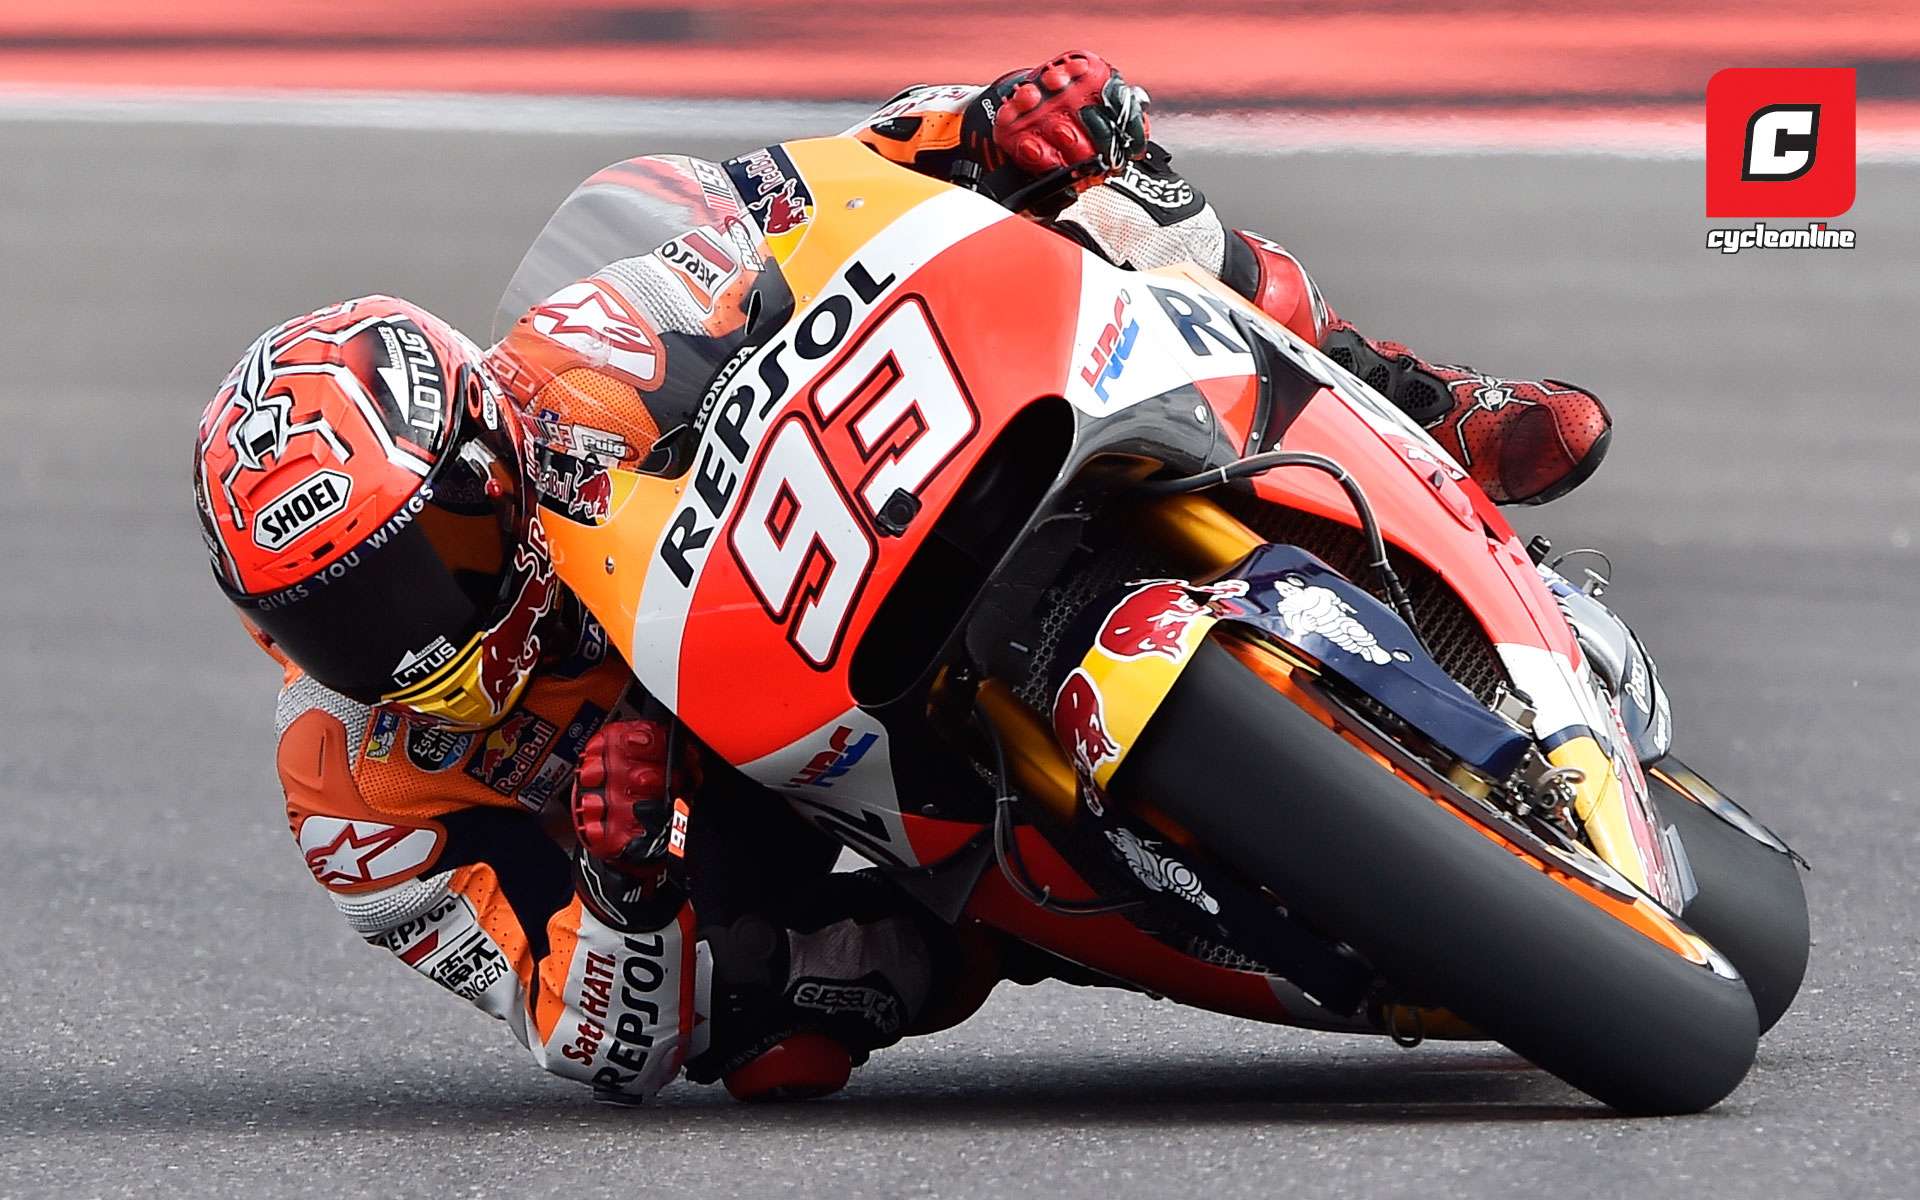 Wallpaper marc marquez cycleonline repsol hondas marc marquez was in top form the 2013 and 2014 world champion was fast throughout practice claimed pole and won the race convincingly voltagebd Images